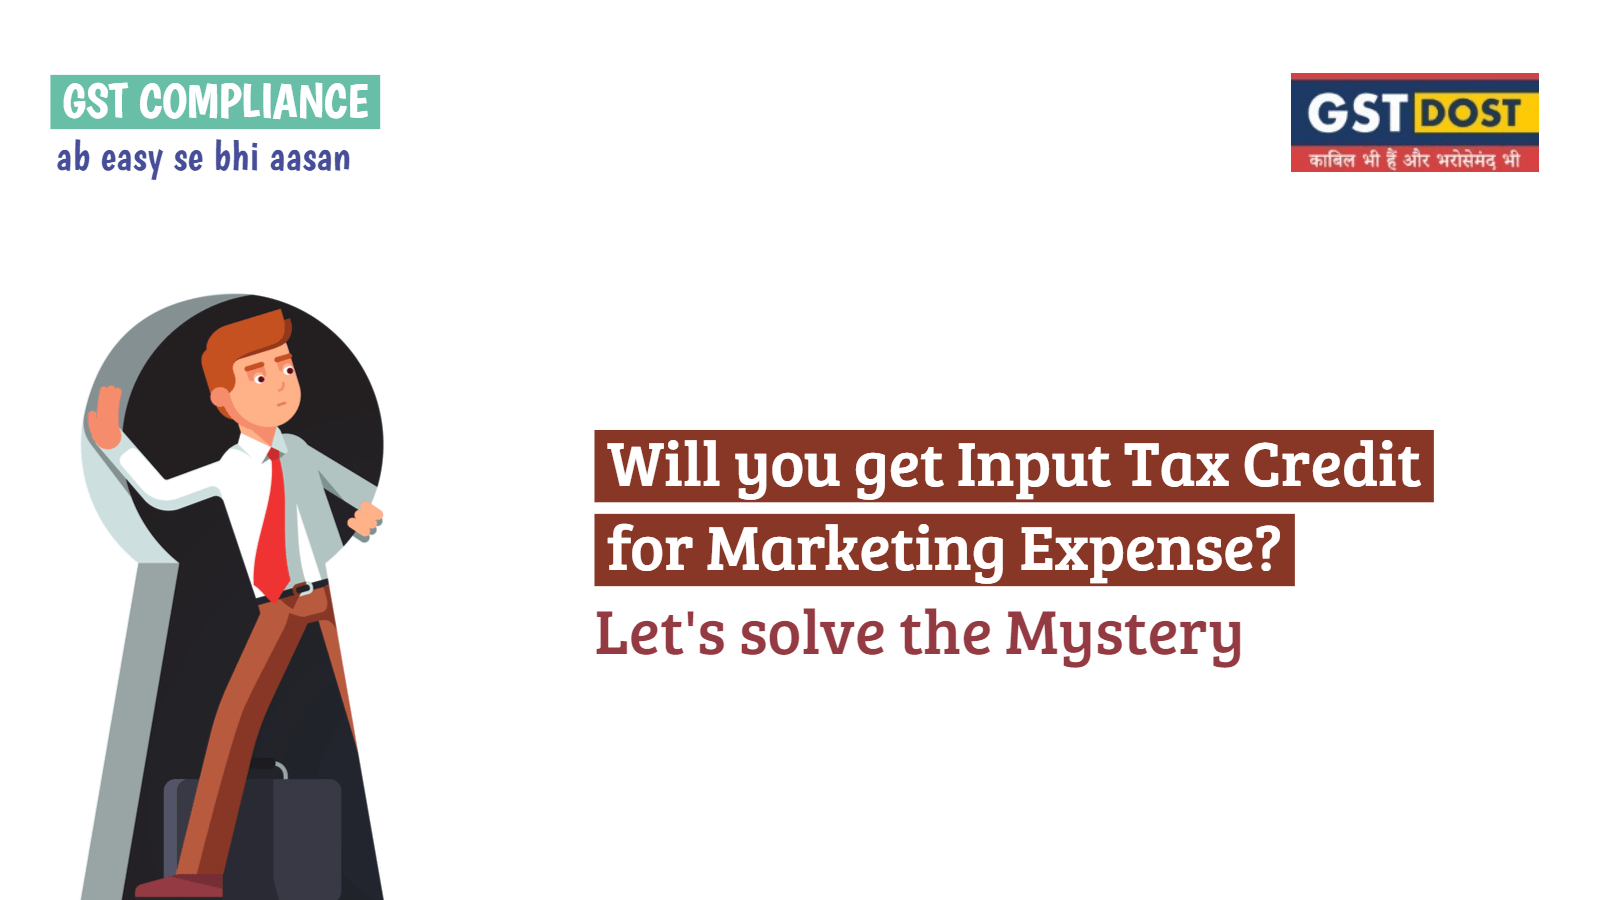 Will you get Input Tax Credit for Marketing Expense? Let's solve the Mystery